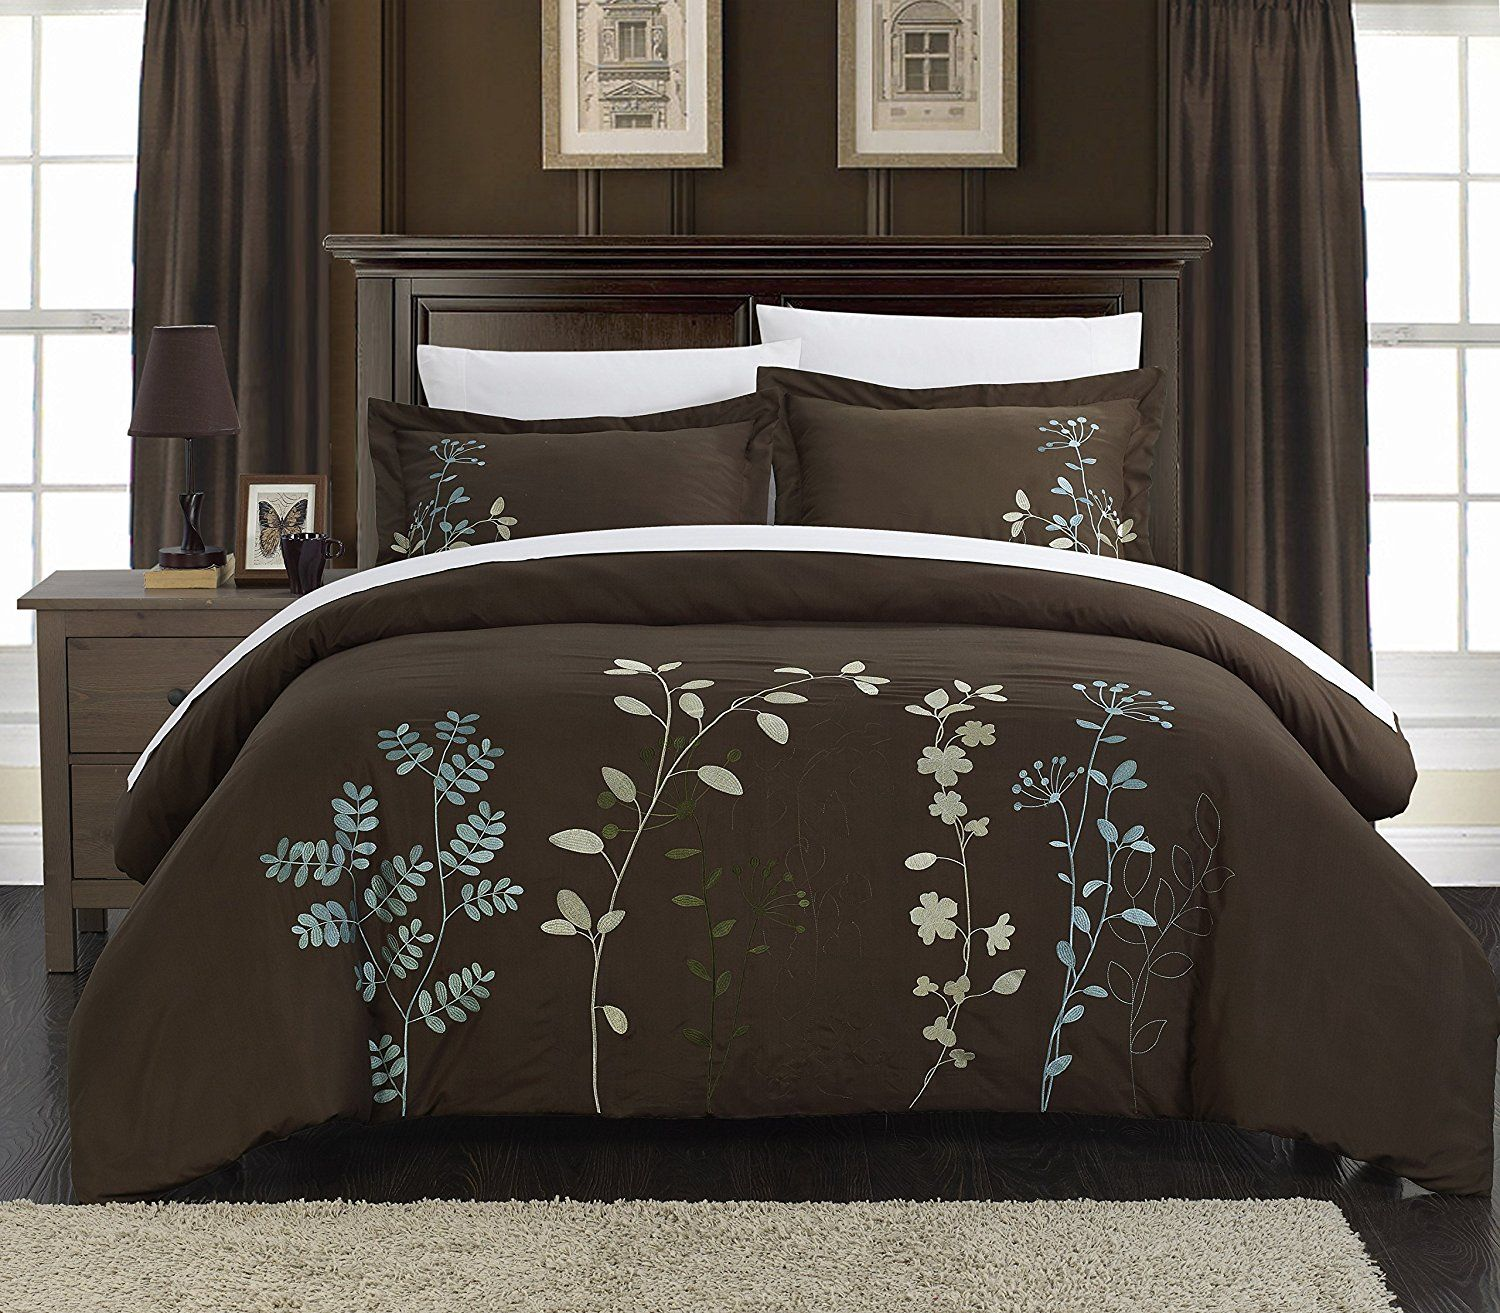 Chic Home 3 Piece Kaylee Floral Embroidered Duvet Set King Brown